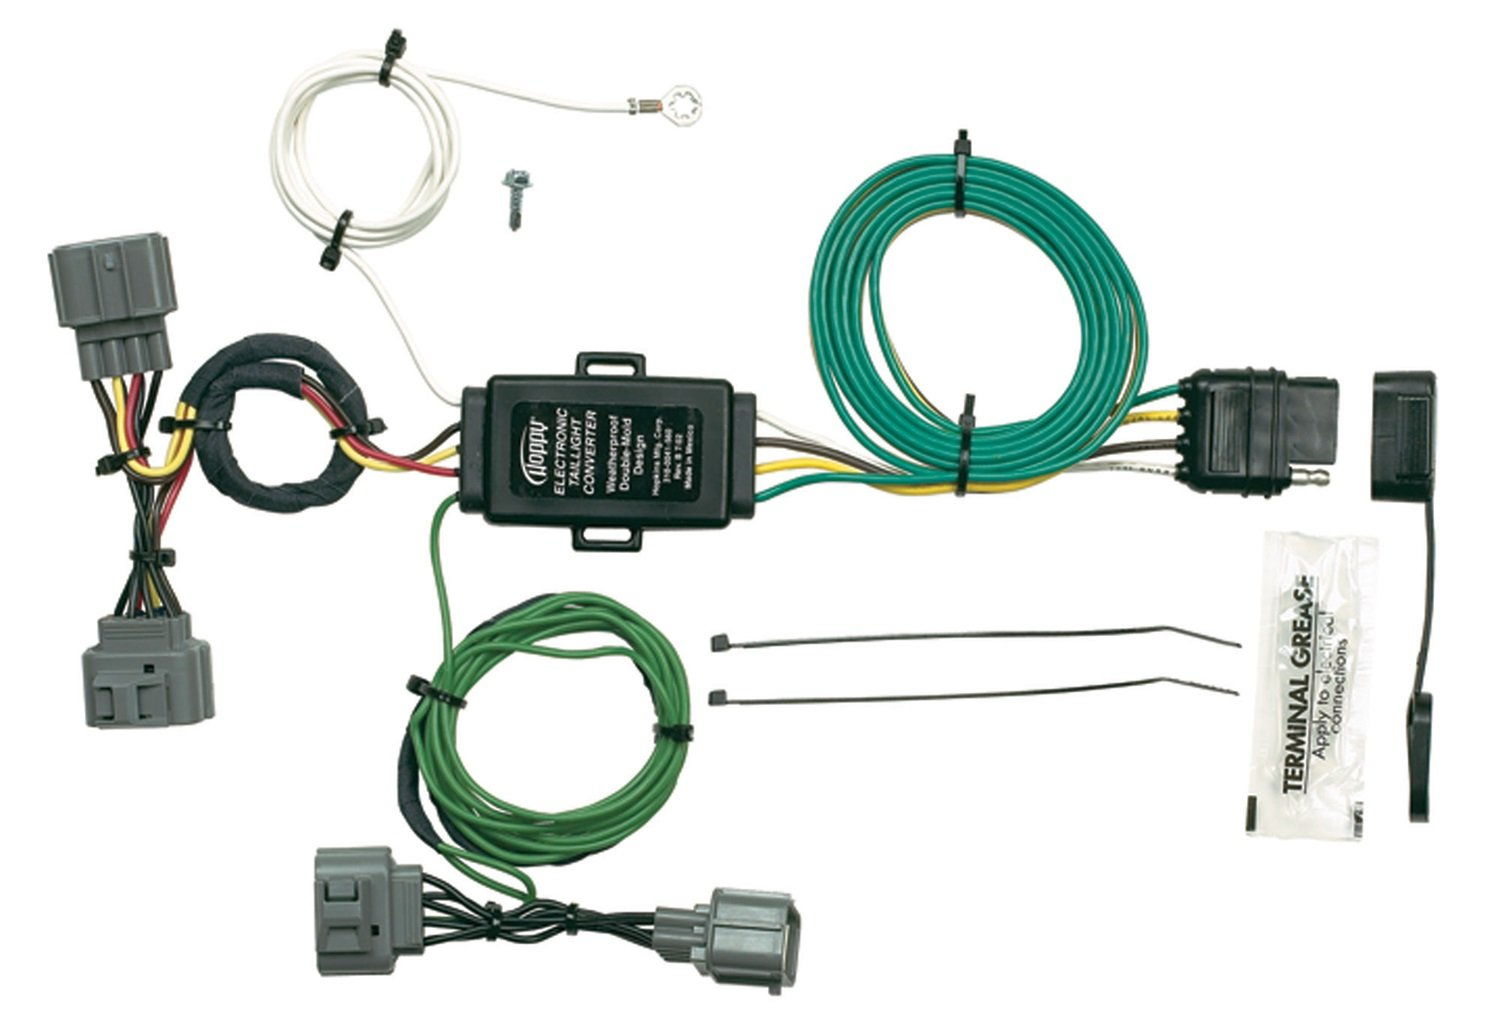 61uhFx0L6RL._SL1500_ amazon com hopkins 43125 plug in simple vehicle wiring kit 2013 honda ridgeline trailer wiring harness at bakdesigns.co